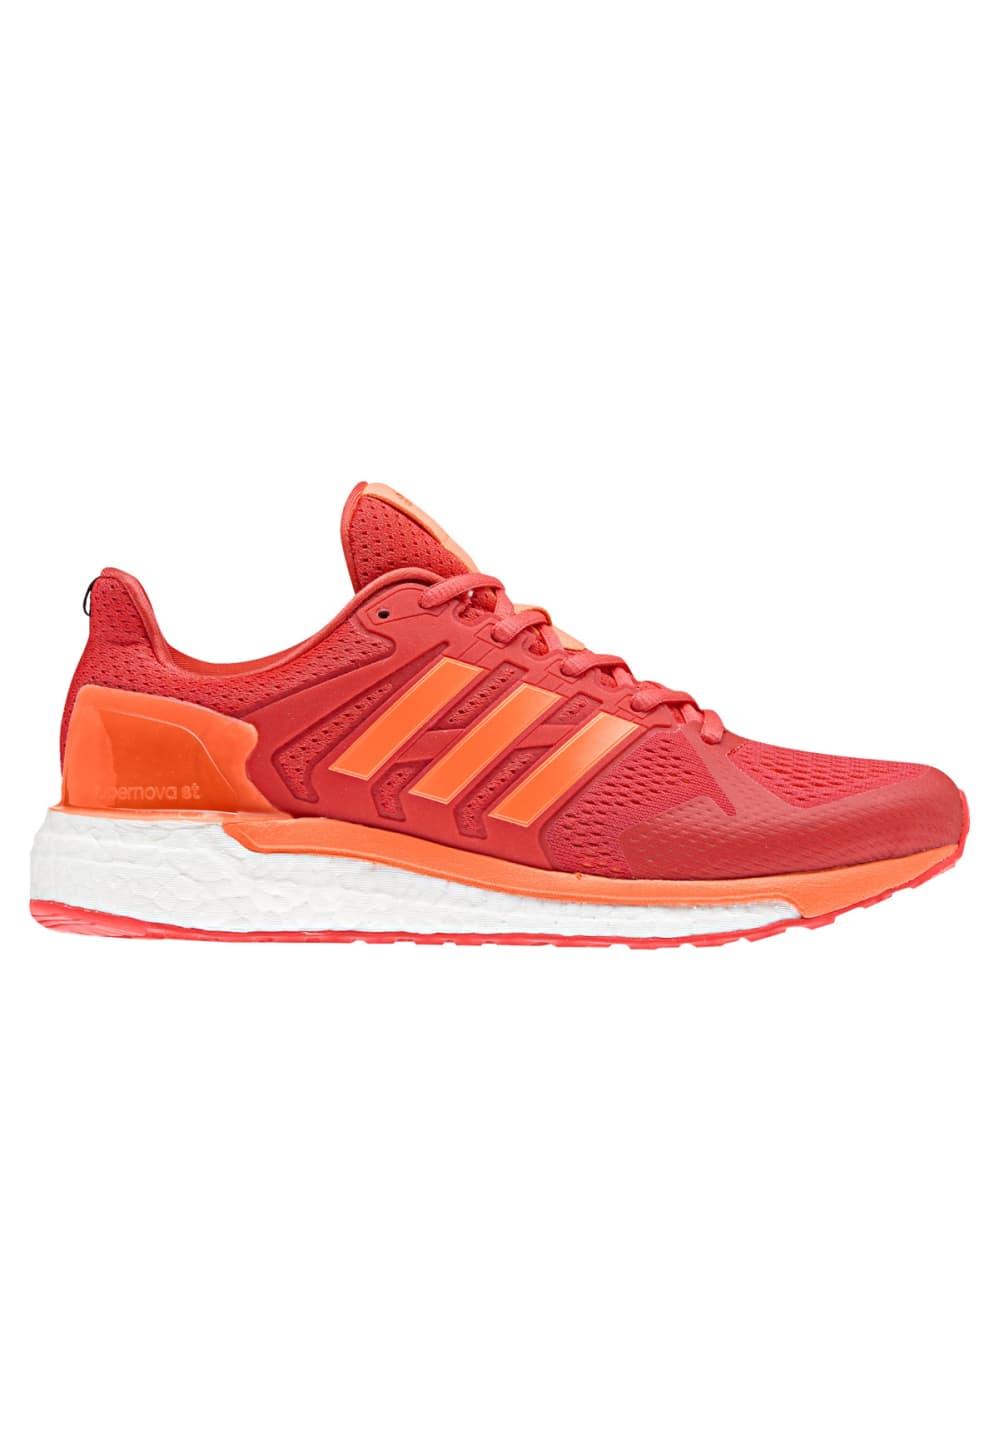 3431fcc0c ... adidas Supernova St - Running shoes for Women - Multicolor. Back to  Overview. 1  2. Previous